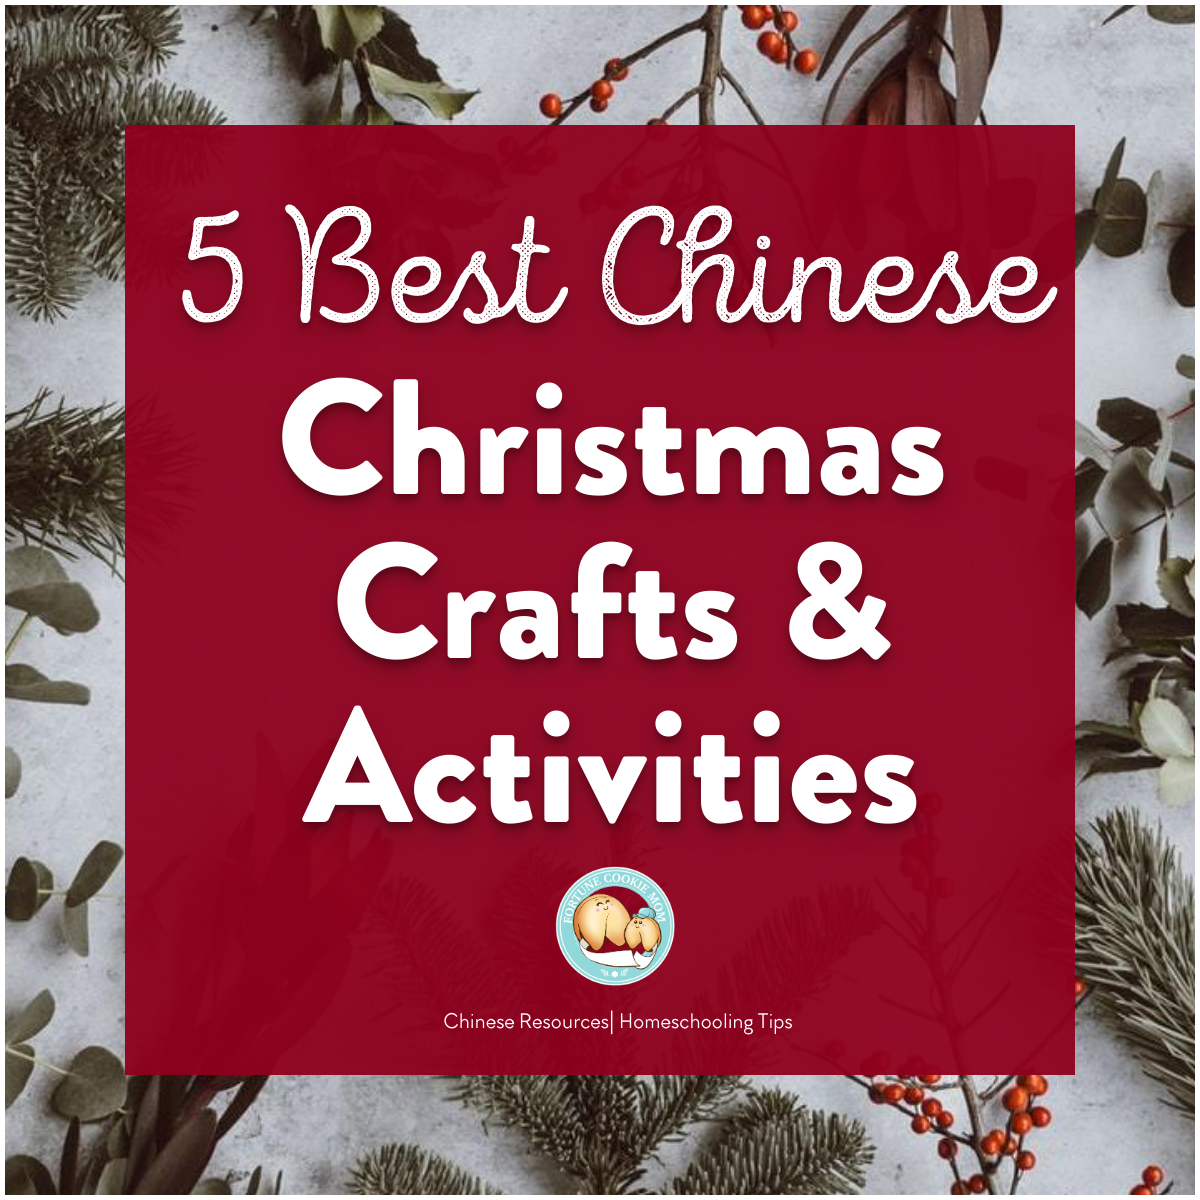 5 Best Chinese Christmas Crafts and Activities